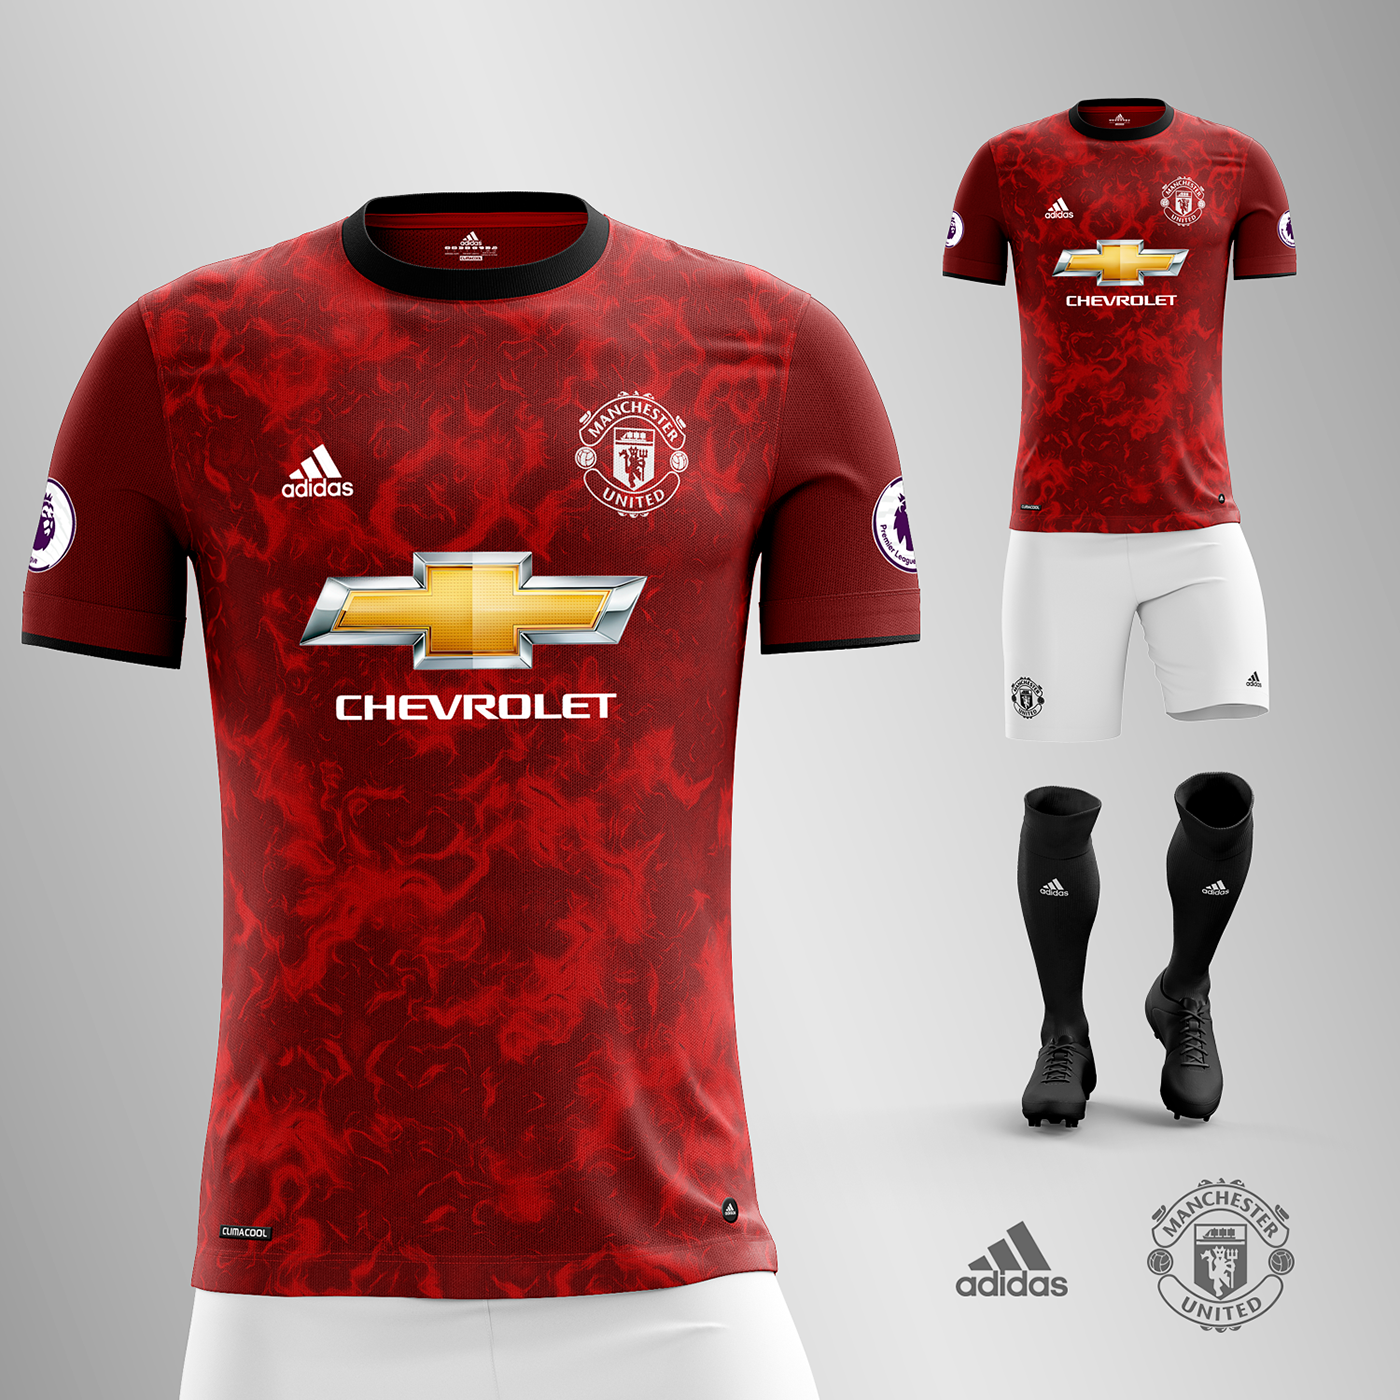 Pin By Creative Mind Designs On Sports Games Manchester United Home Kit Manchester United Sports Jersey Design